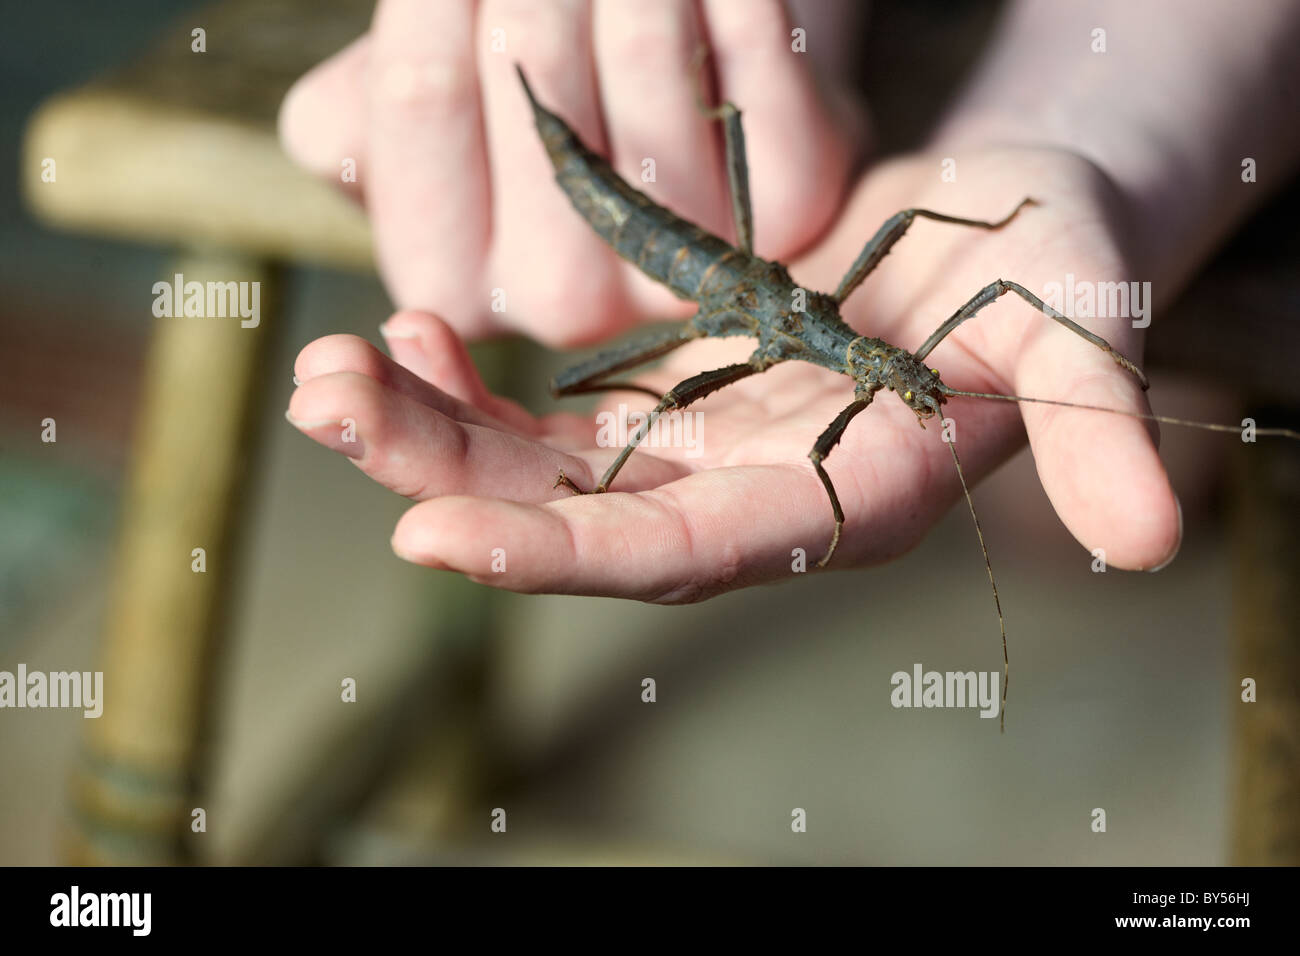 Trachyaretaon Bruekneri, Giant Thorny Stick insect, kept as a pet, with it's young owner. - Stock Image